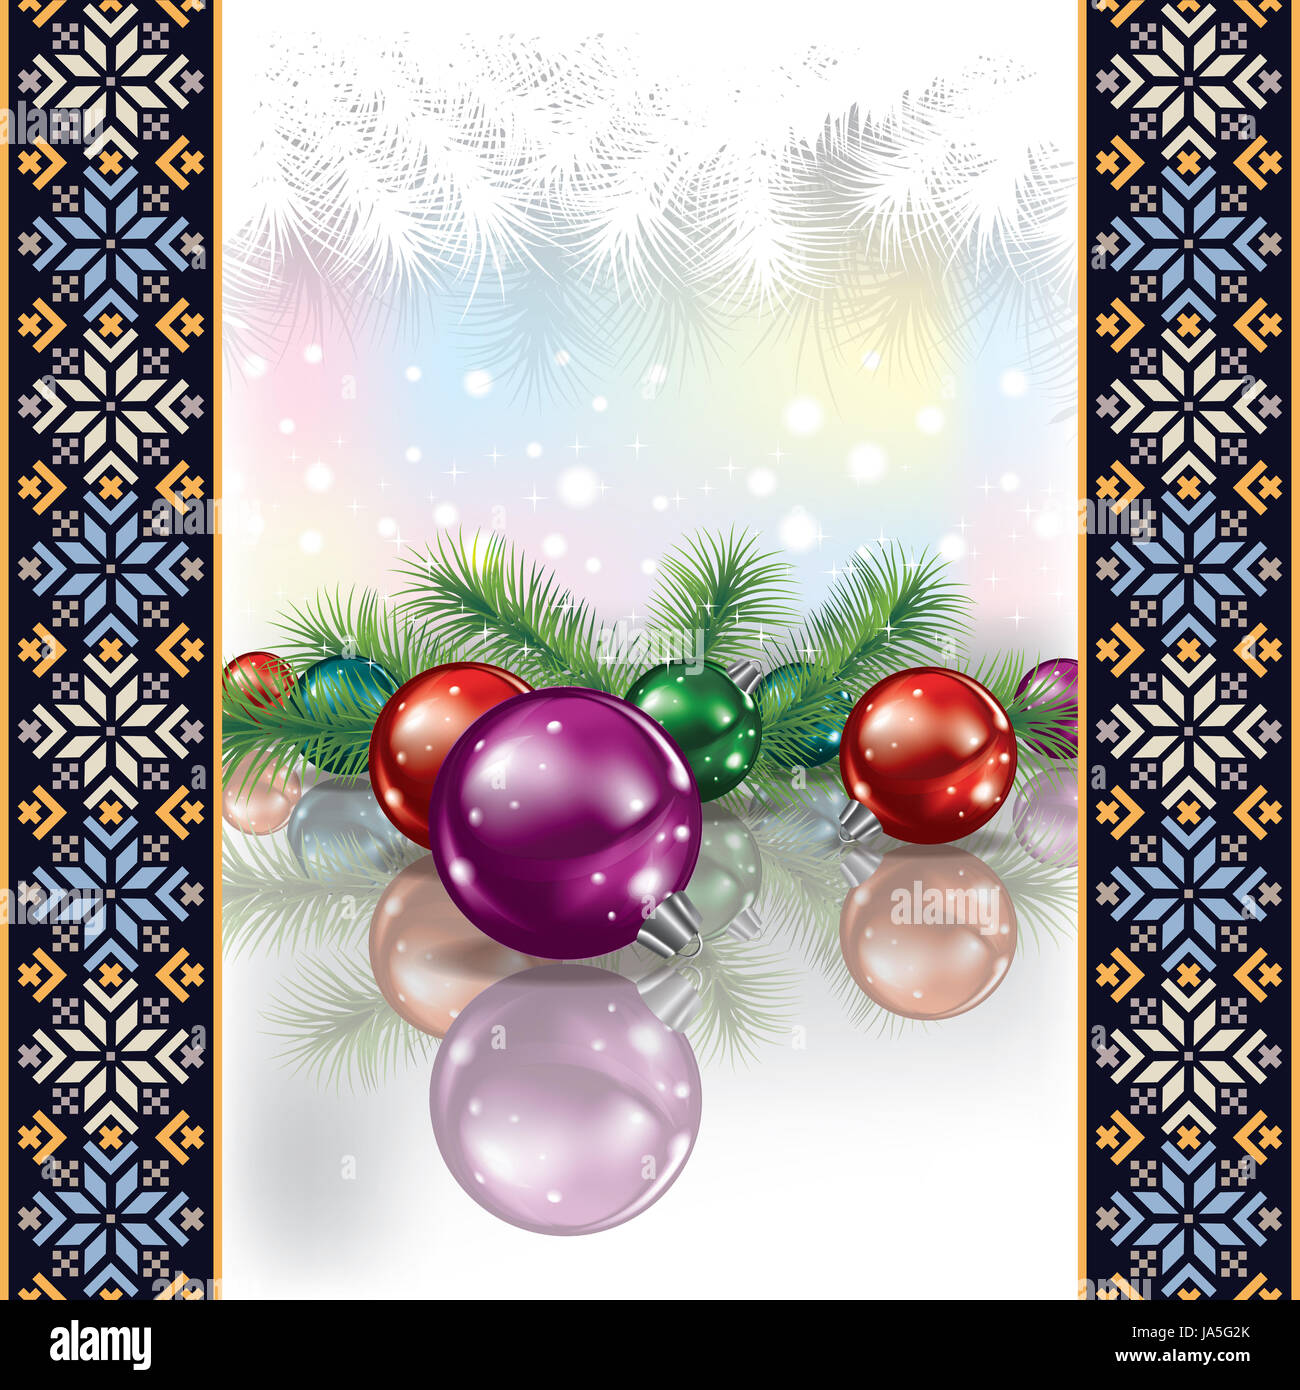 Christmas Imagery.Christmas Imagery Stock Photos Christmas Imagery Stock